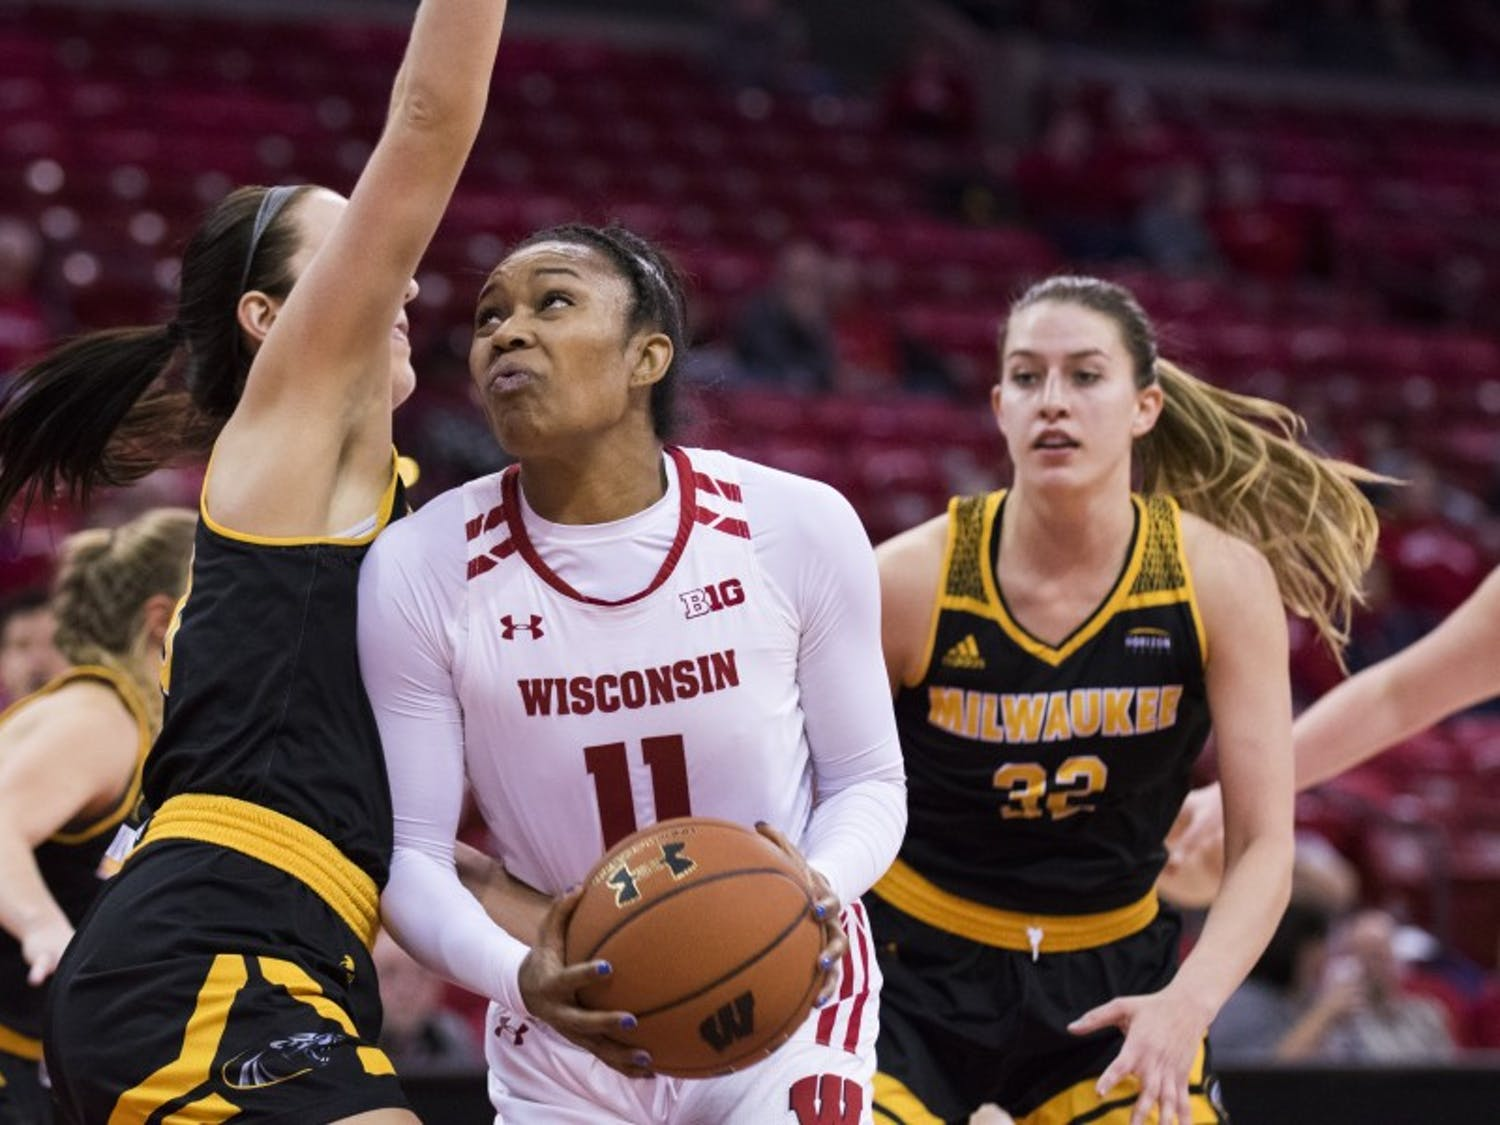 Senior forward Marsha Howard followed up her 1000th career point against Ohio State with a dominant game at home Wednesday night versus Illinois.